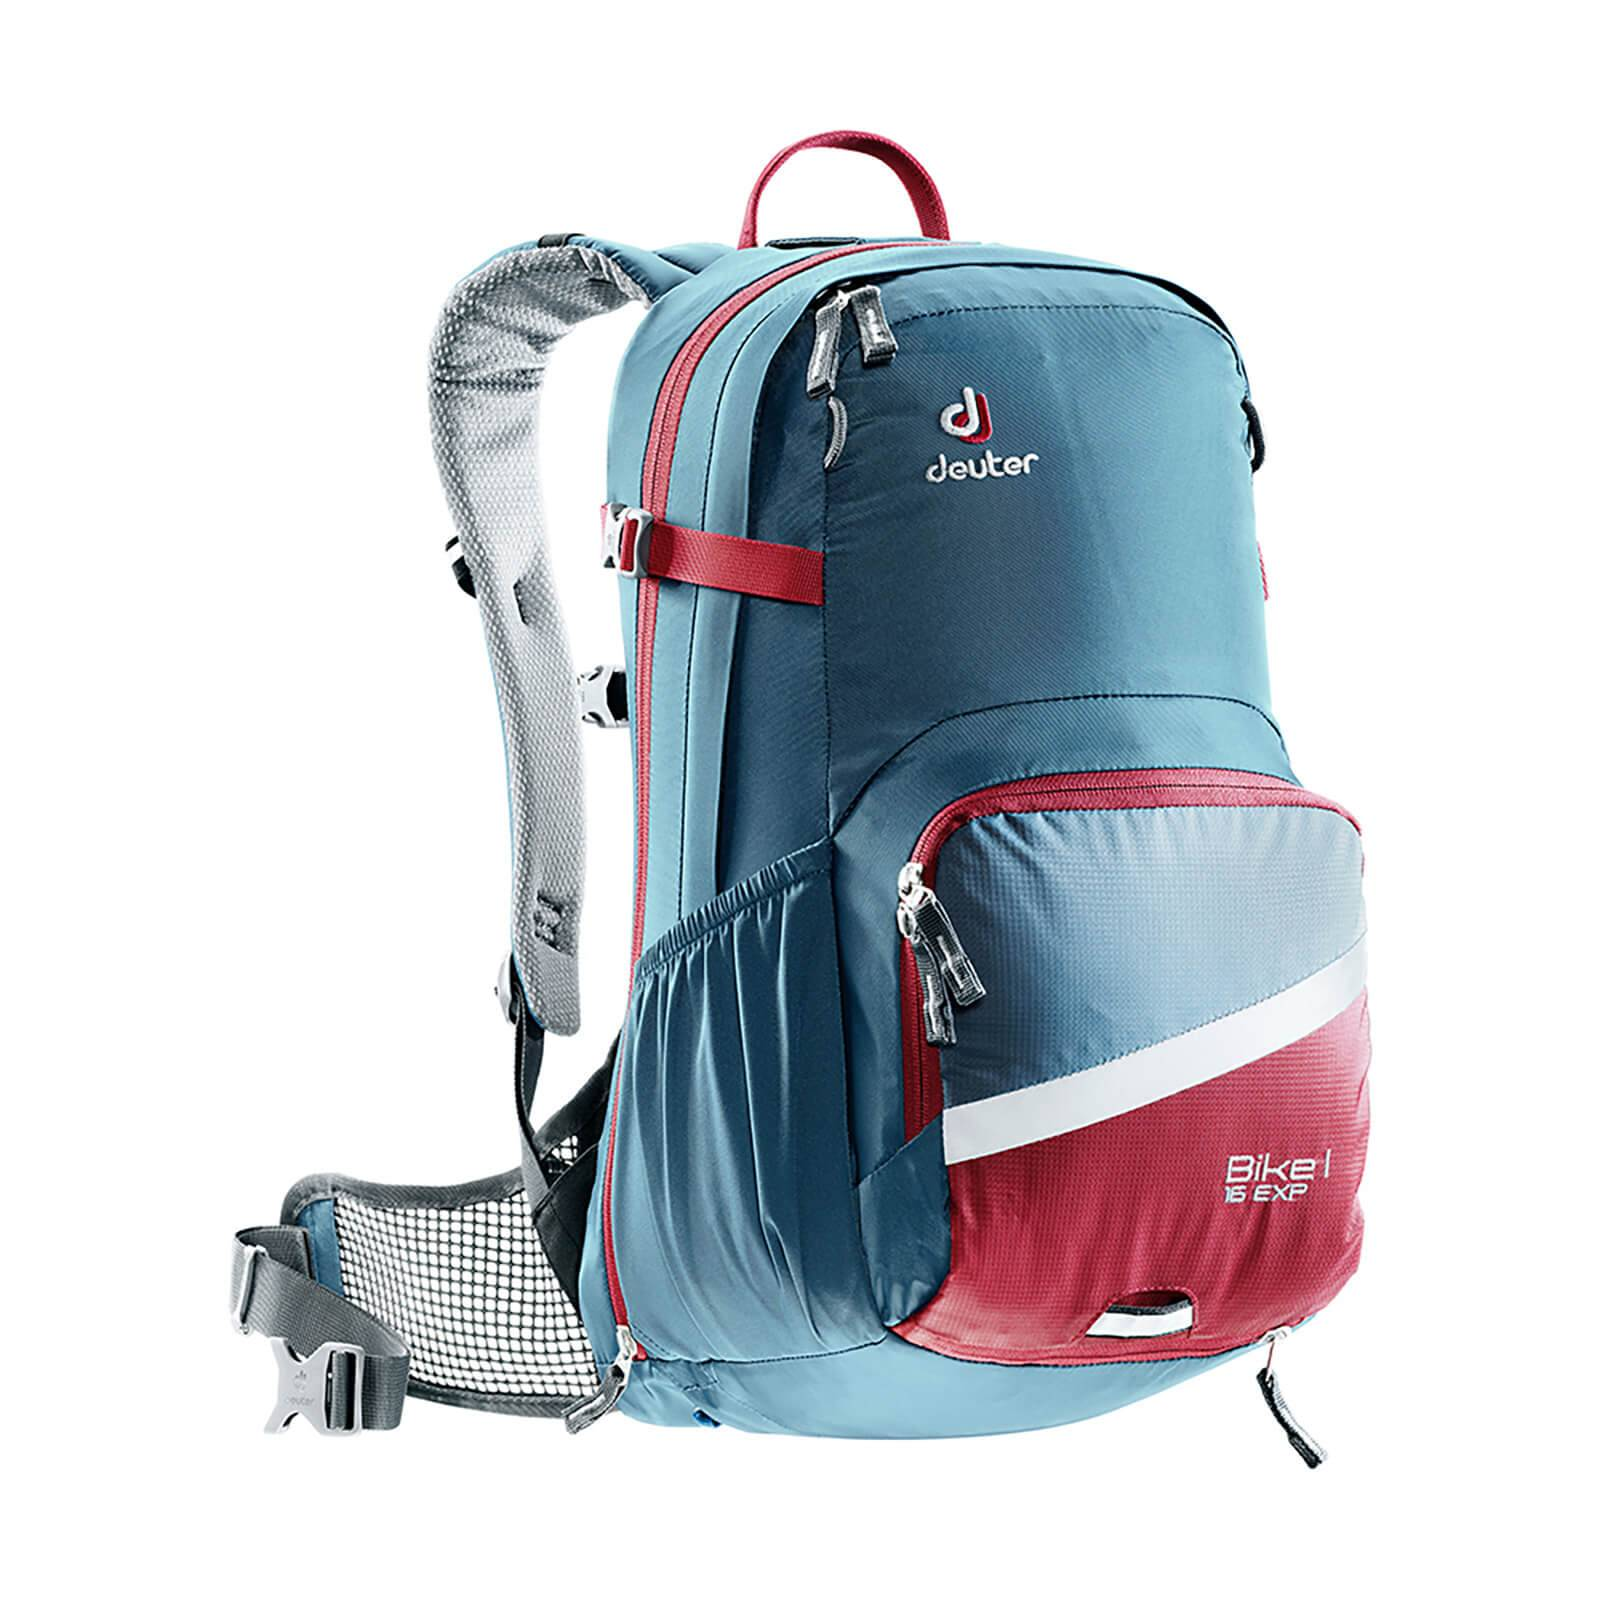 Deuter Bike 1 Air Exp 16L Backpack - Arctic/Cranberry